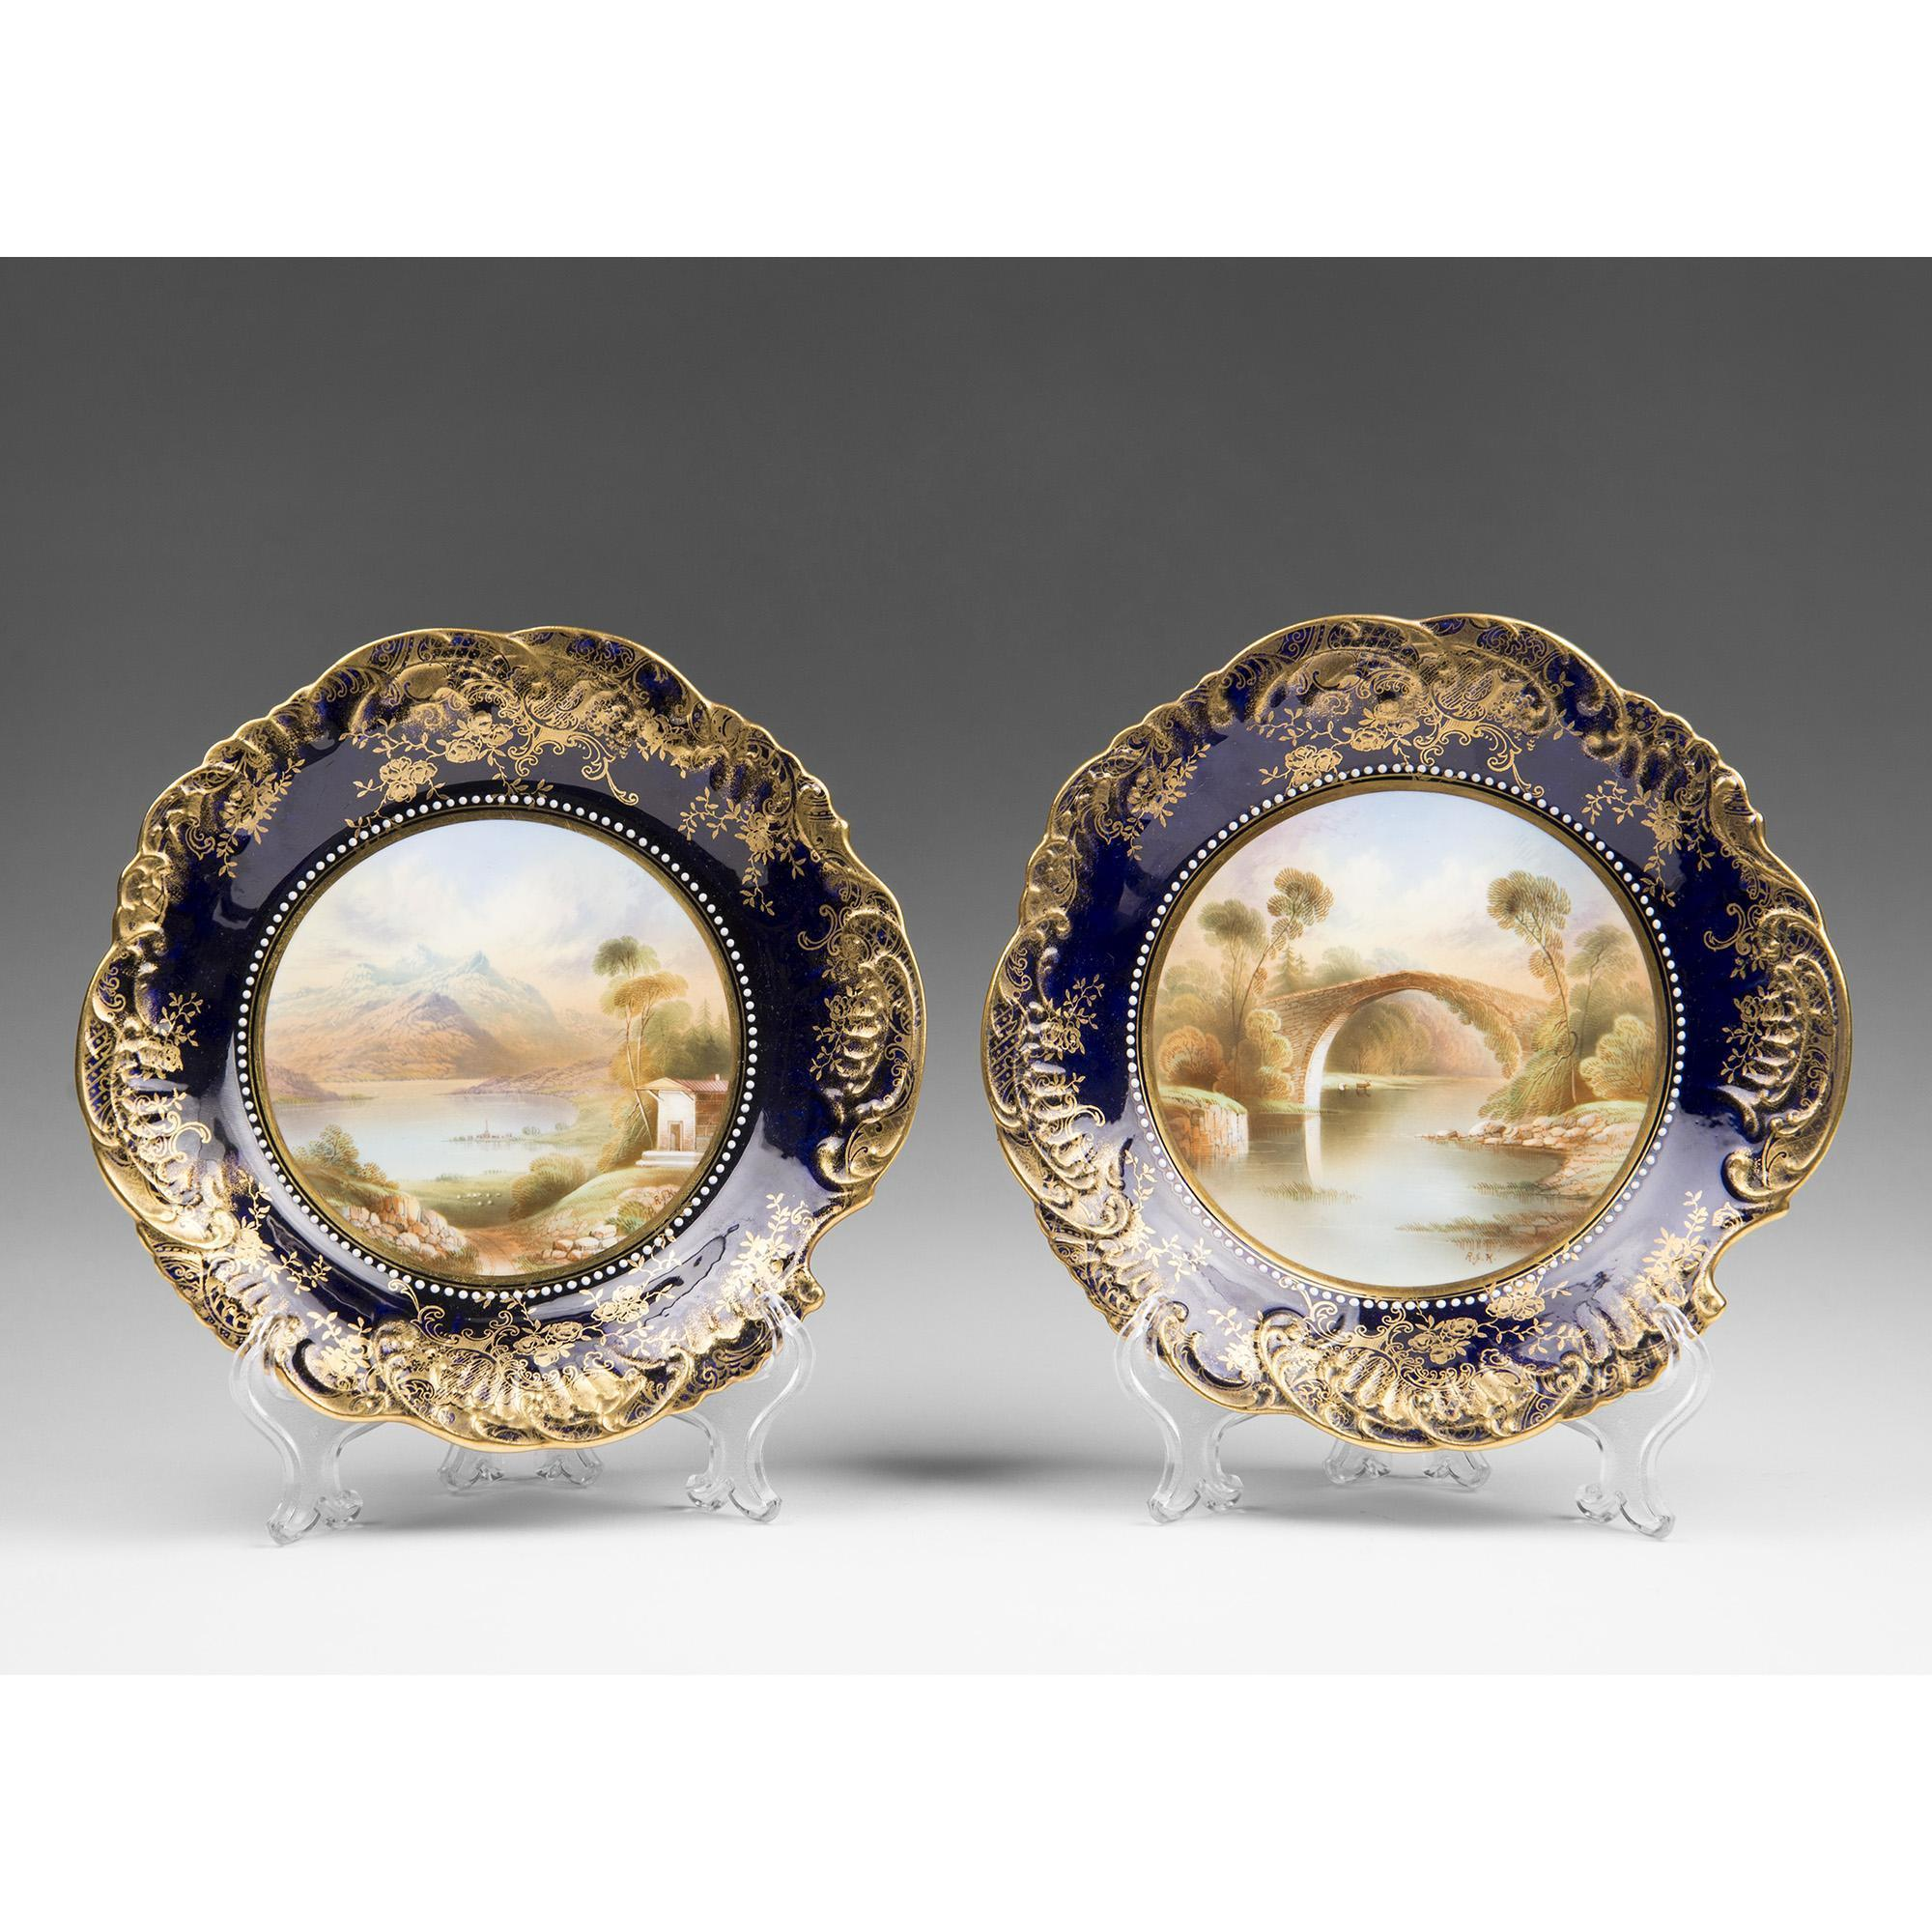 Pair of 19th C. Named Scene Cabinet Plates by Aynsley